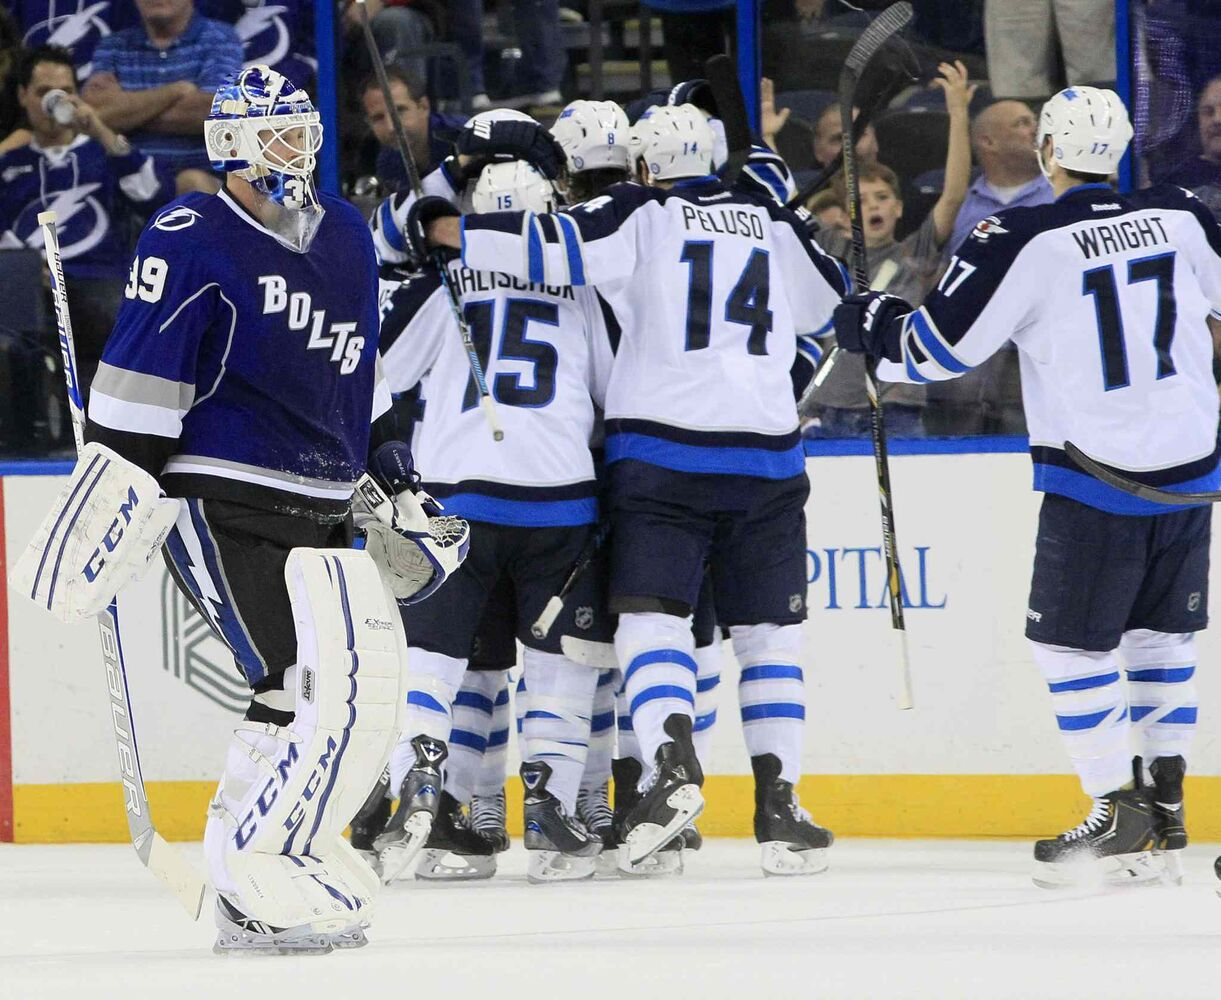 Tampa Bay Lightning goalie Anders Lindback skates off after getting beaten in overtime while the Jets celebrate.